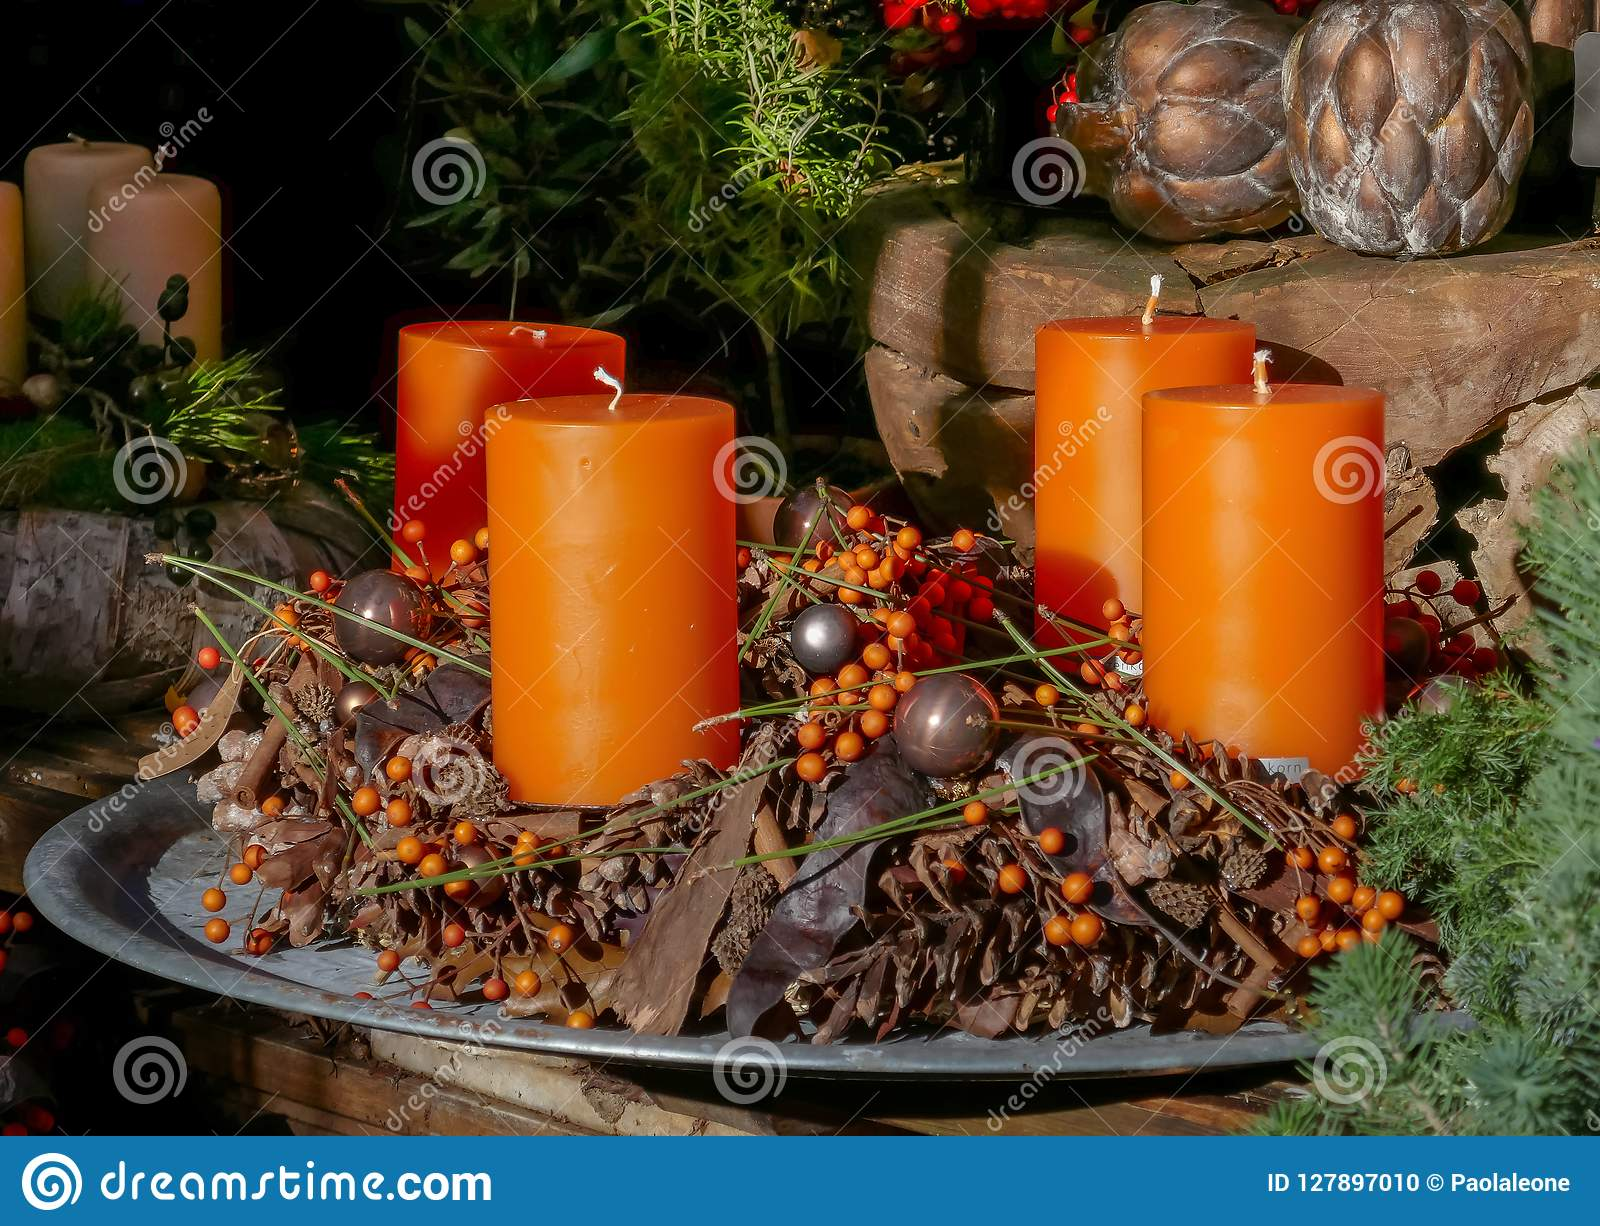 advent candles decoration with pine cones and leaves orange color and wooden elements